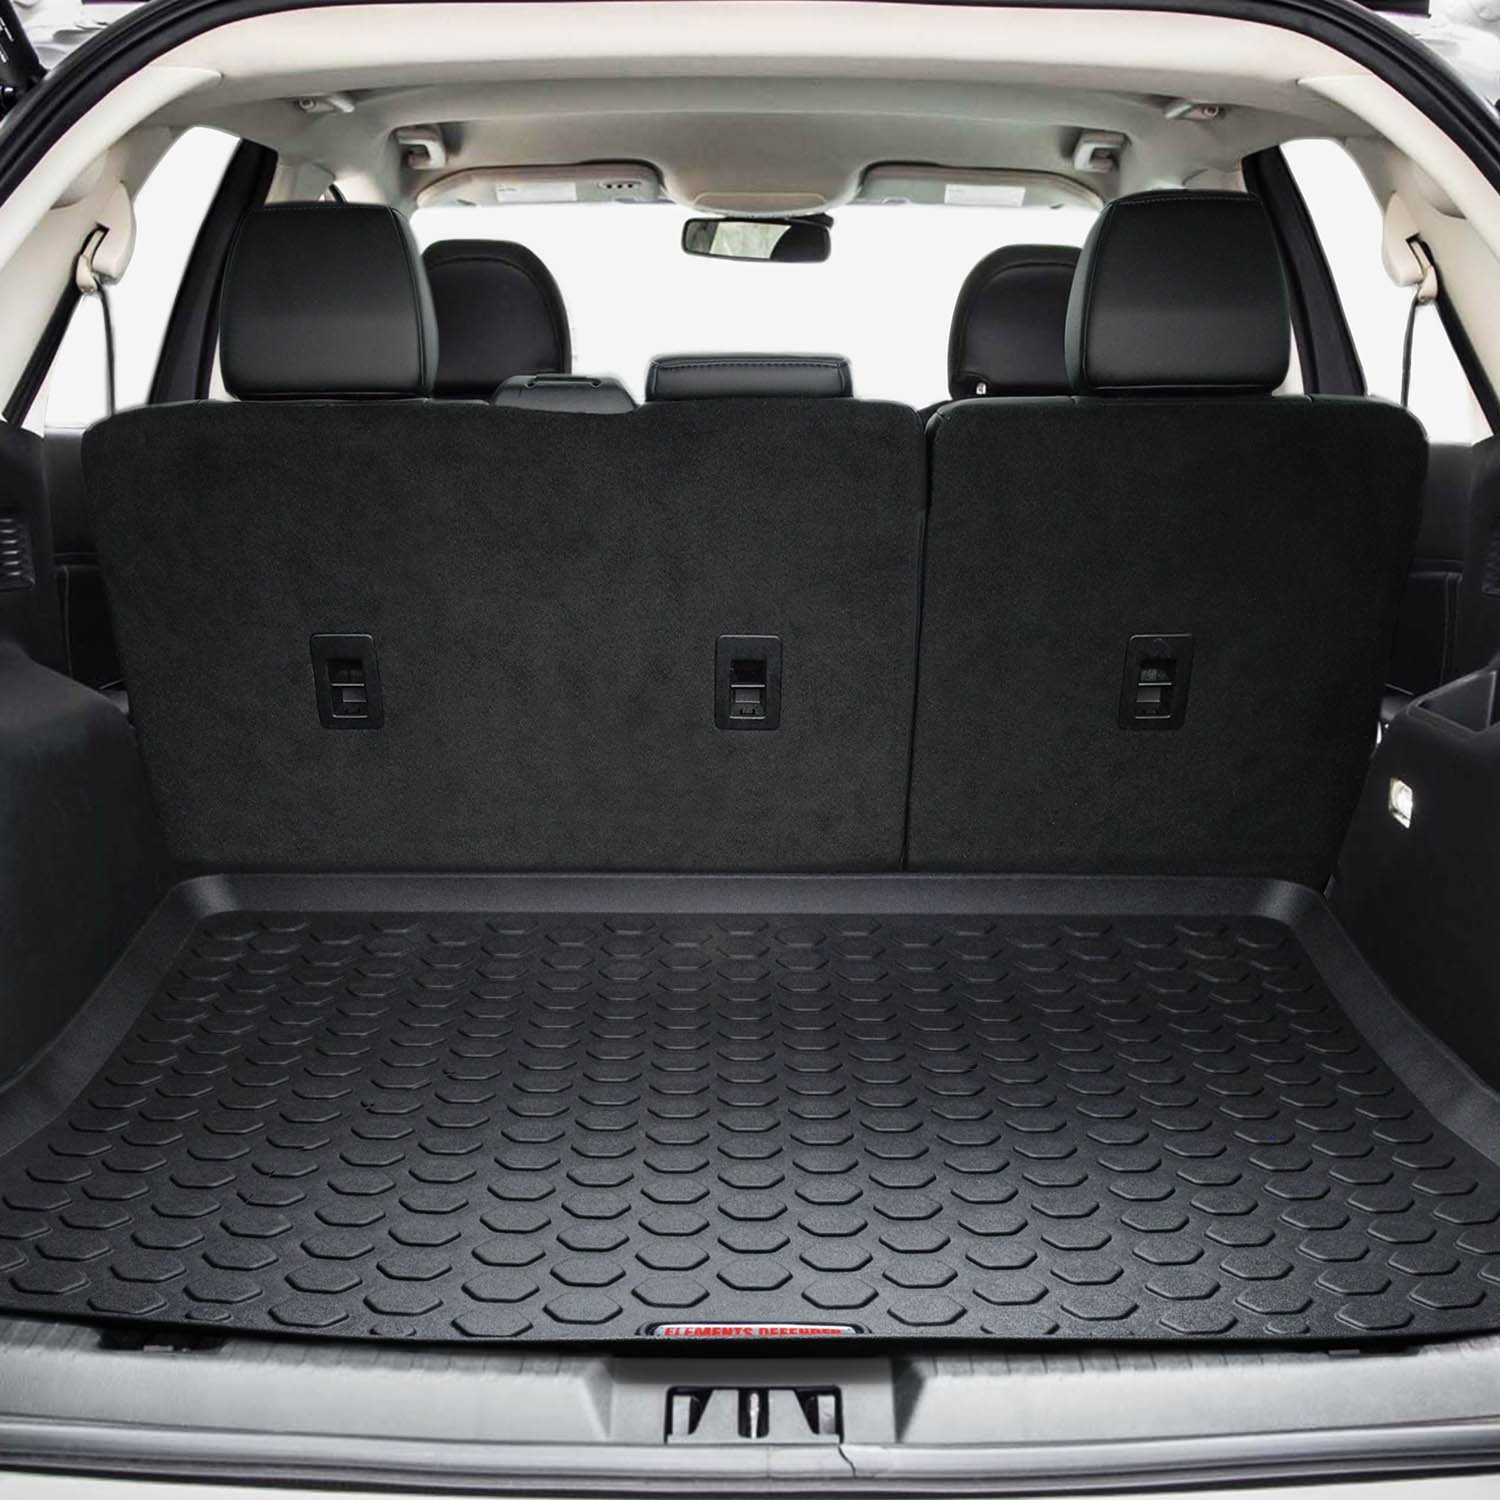 Amazon.com: 2015 - 2018 Ford Edge Cargo Mat by Elements Defender  (GUARANTEED PERFECT FIT) Heavy-Duty All-Weather Trunk & Cargo Liner - 100%  Weather Proof ...